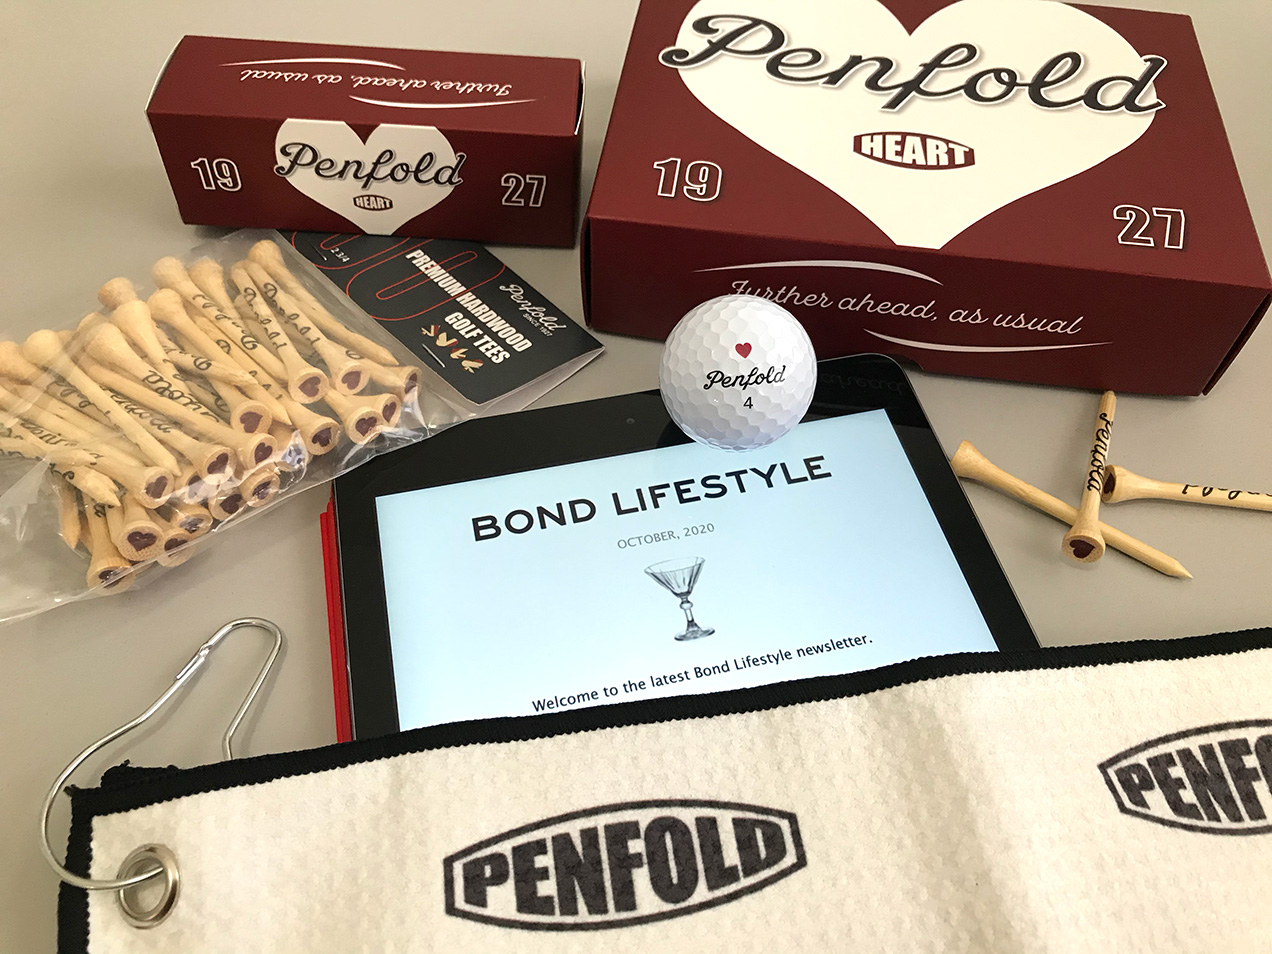 Win Penfold Heart golf ball tees towel